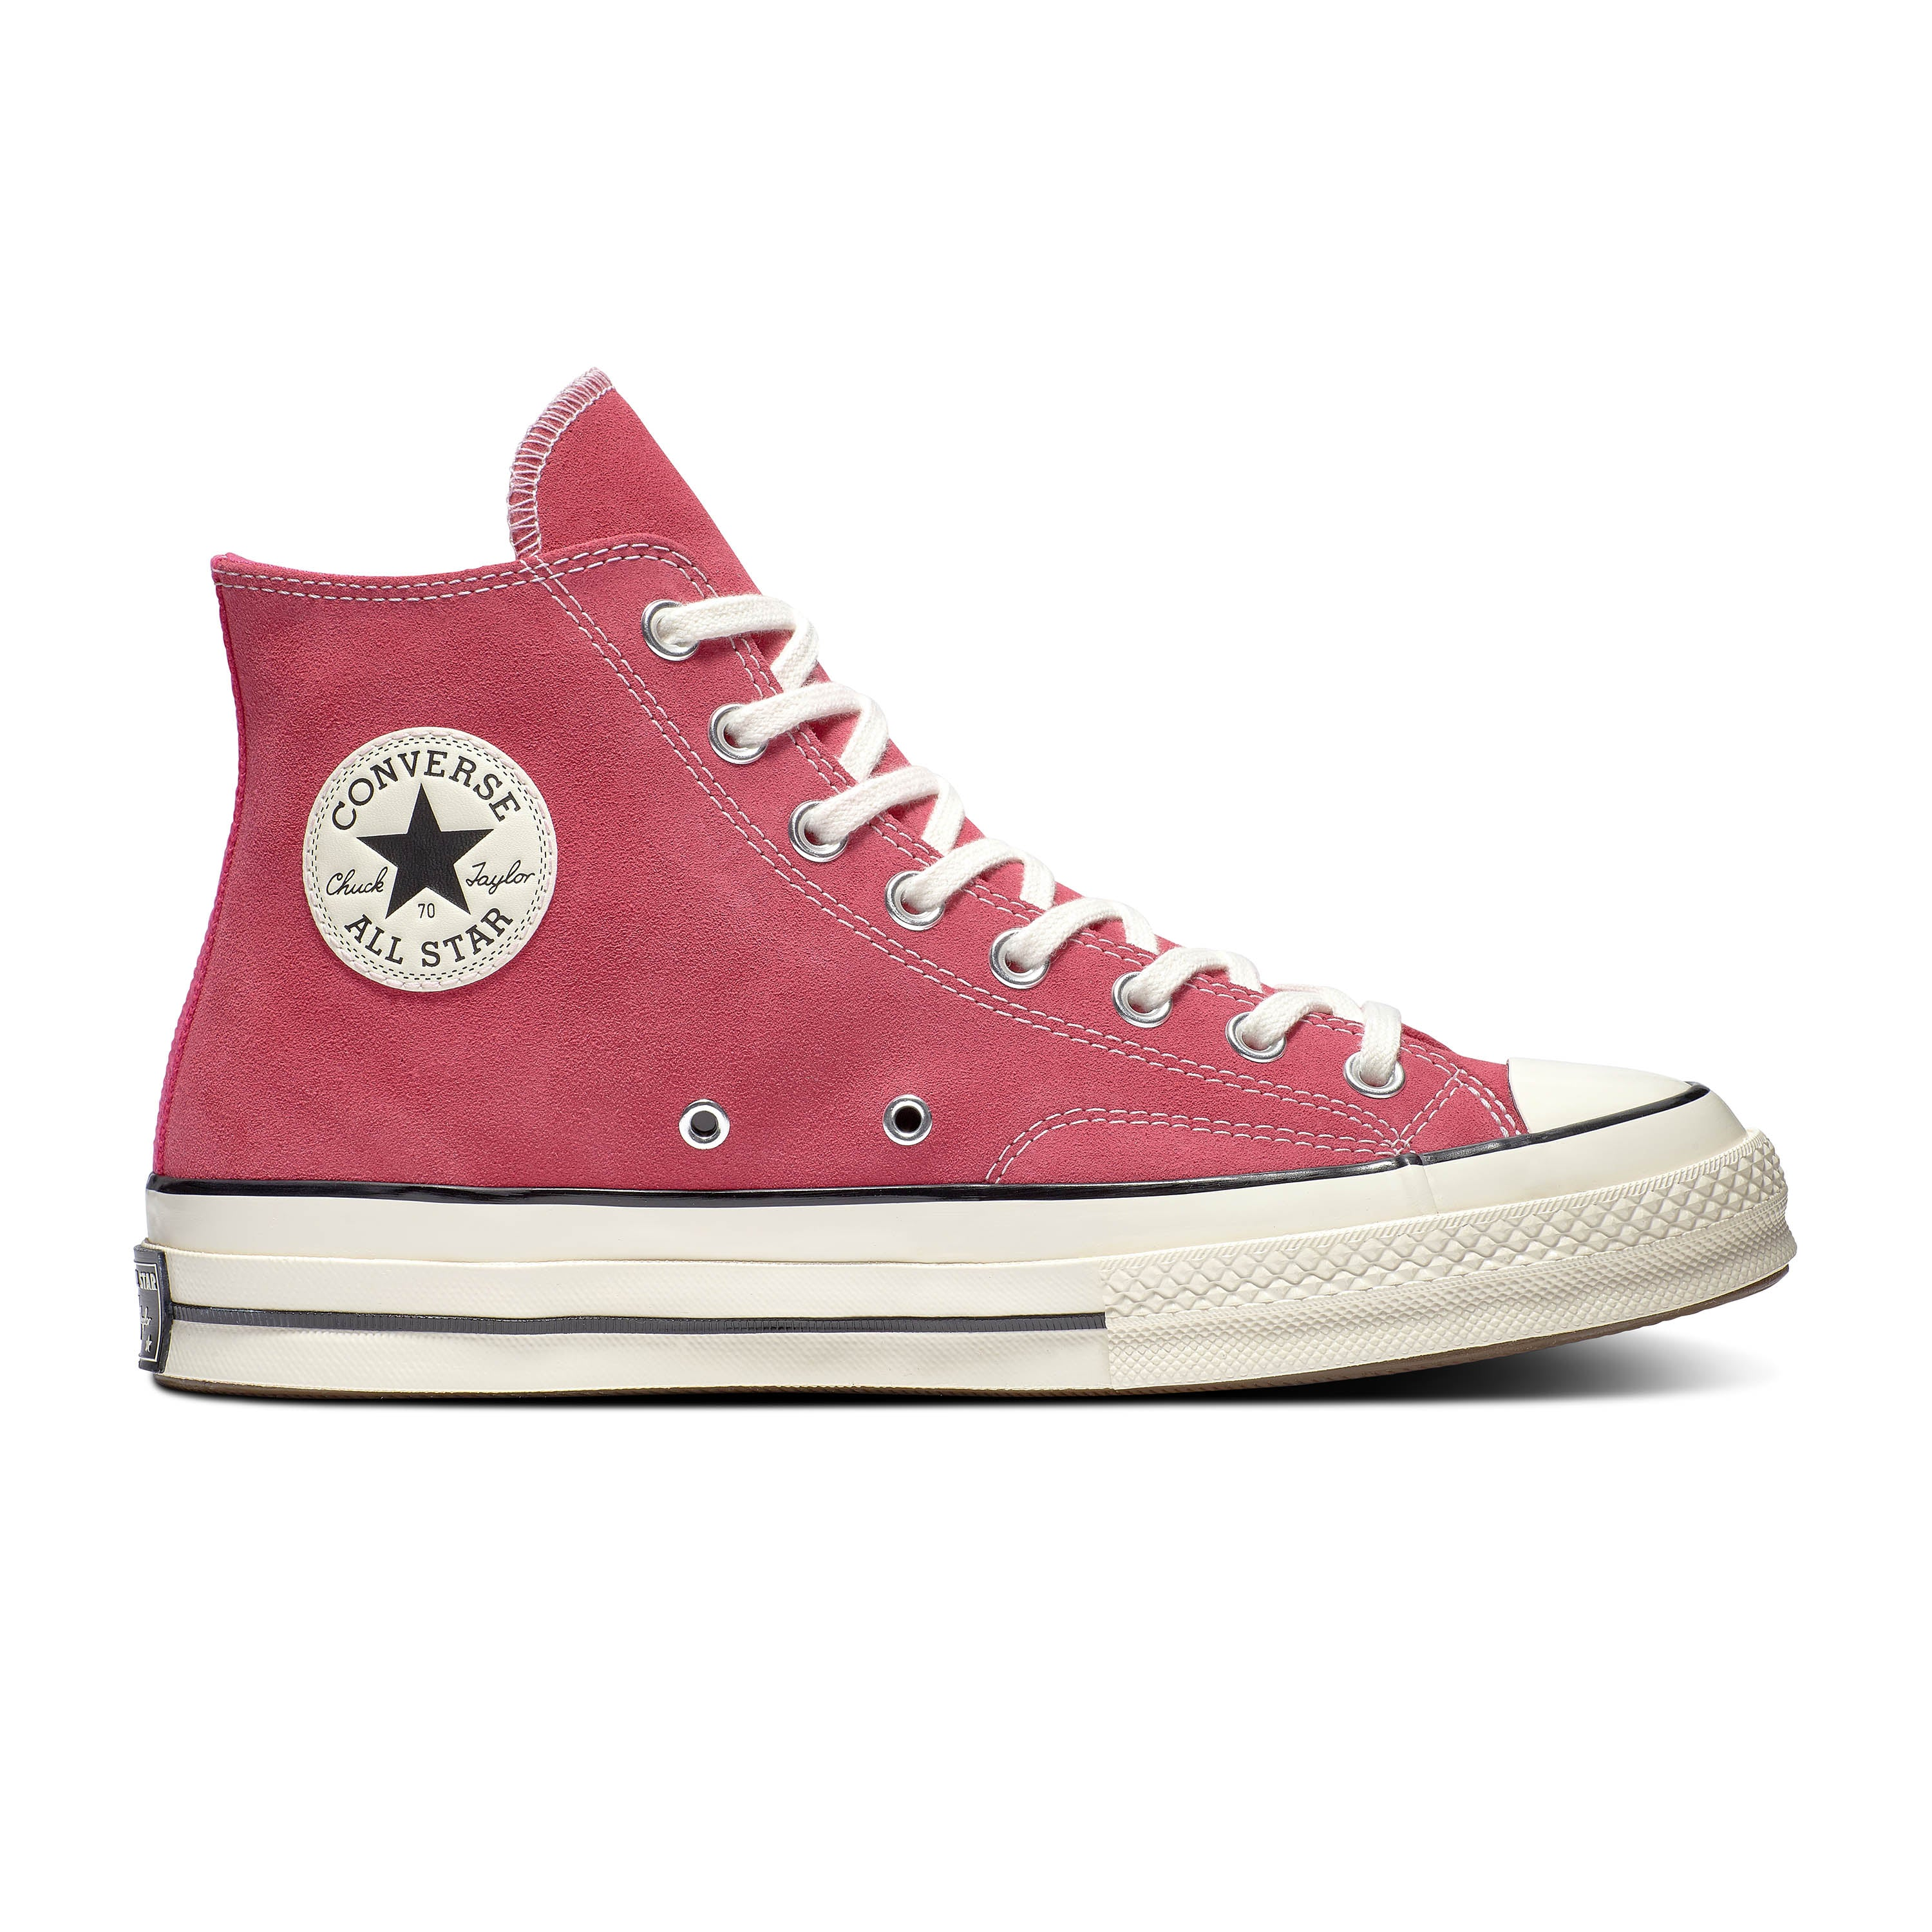 give converse